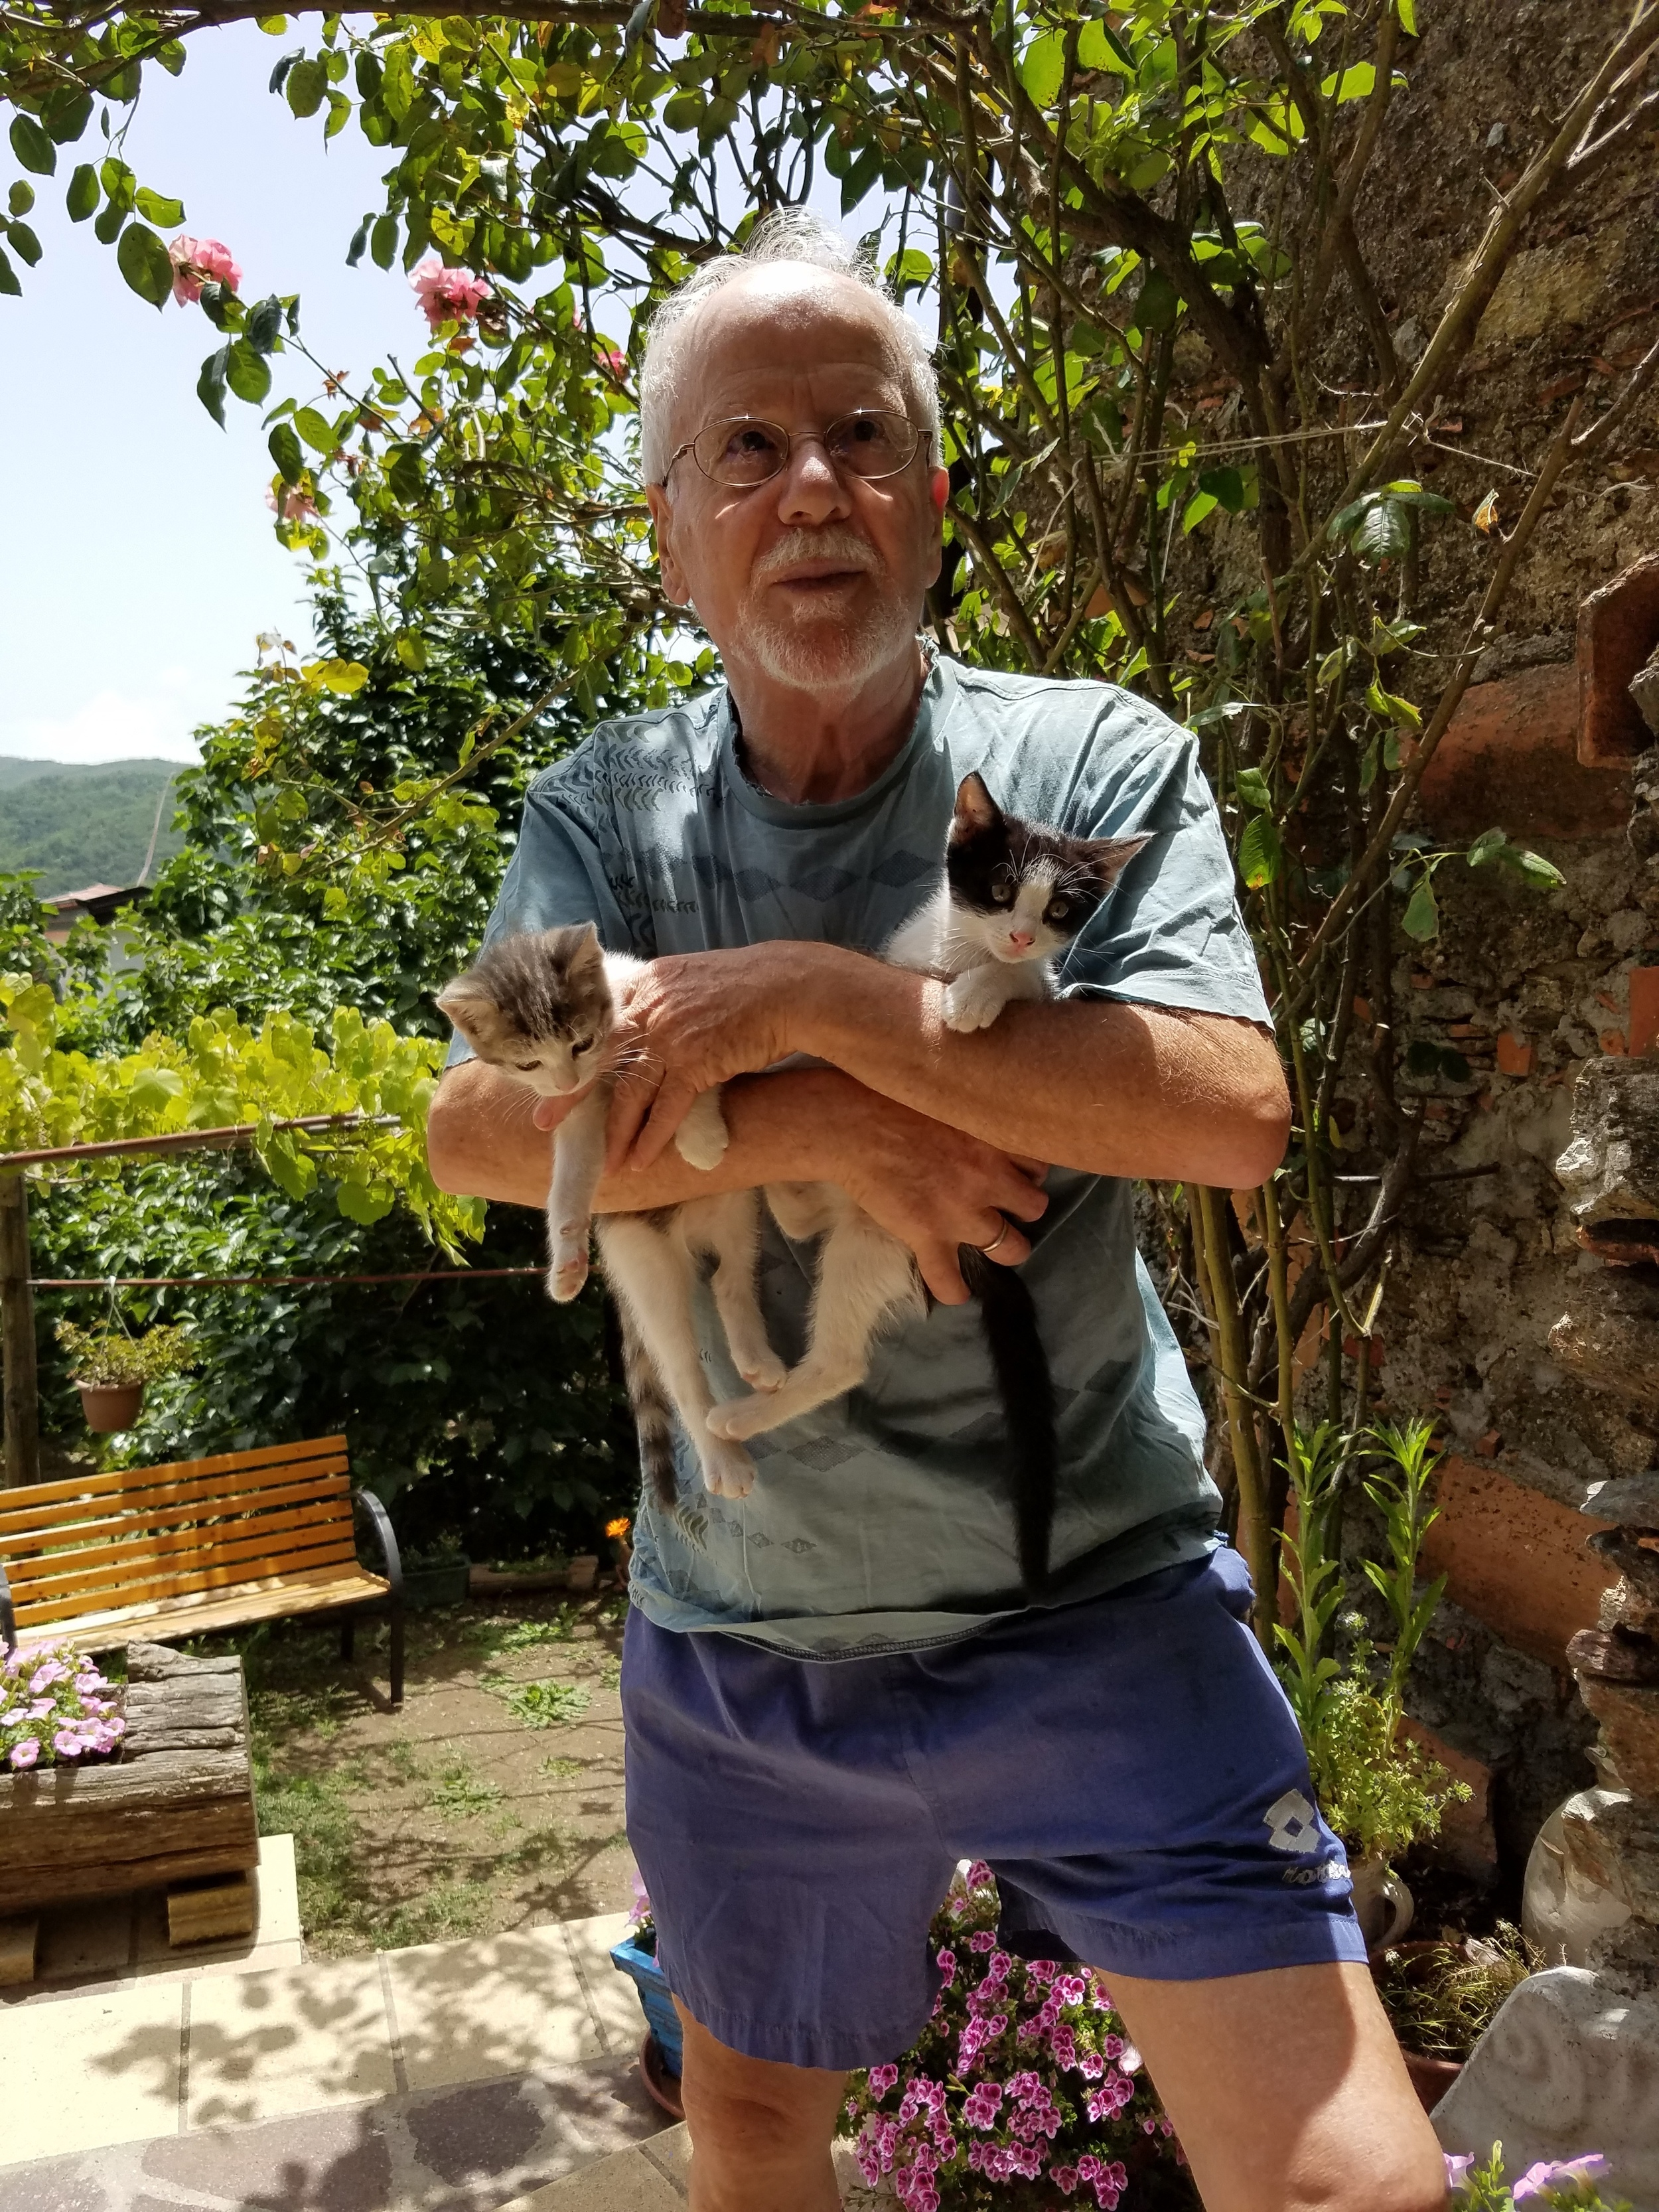 Il Direttore with the kittens.